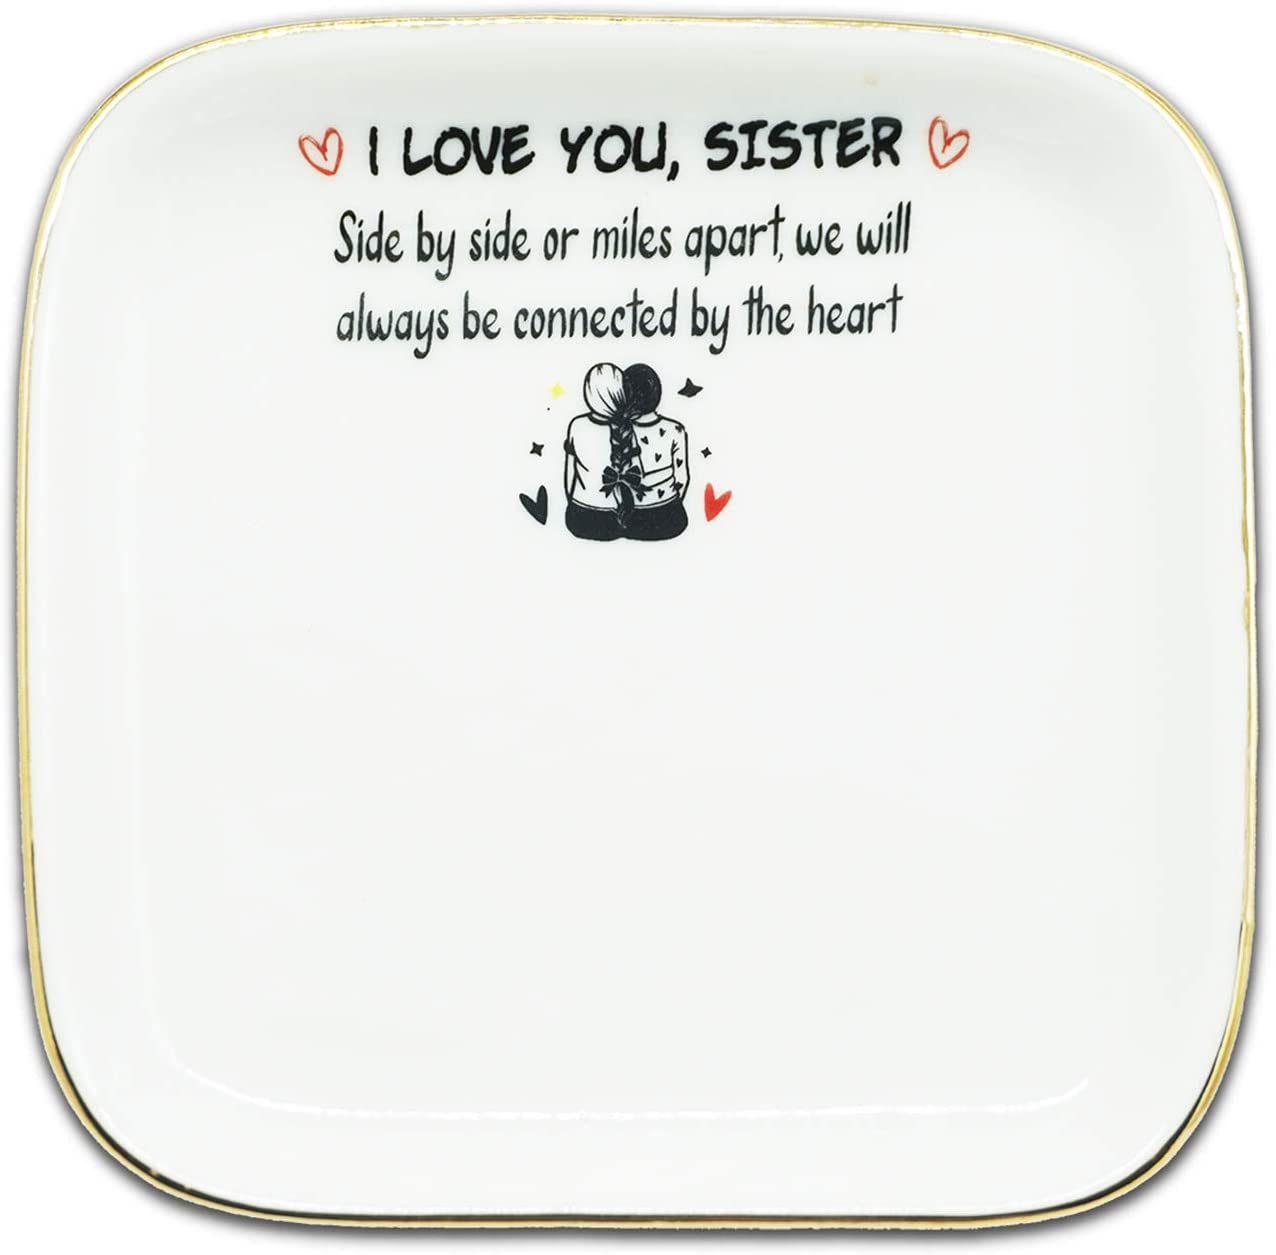 Best Sister Gift Unbiological Sister Twin Sisters Birthday Gift,Ceramic Jewelry Holder Ring Dish Trinket Tray-I Love You Sister,Side by Side Miles Apart,We Will Always Be Connected by The Heart